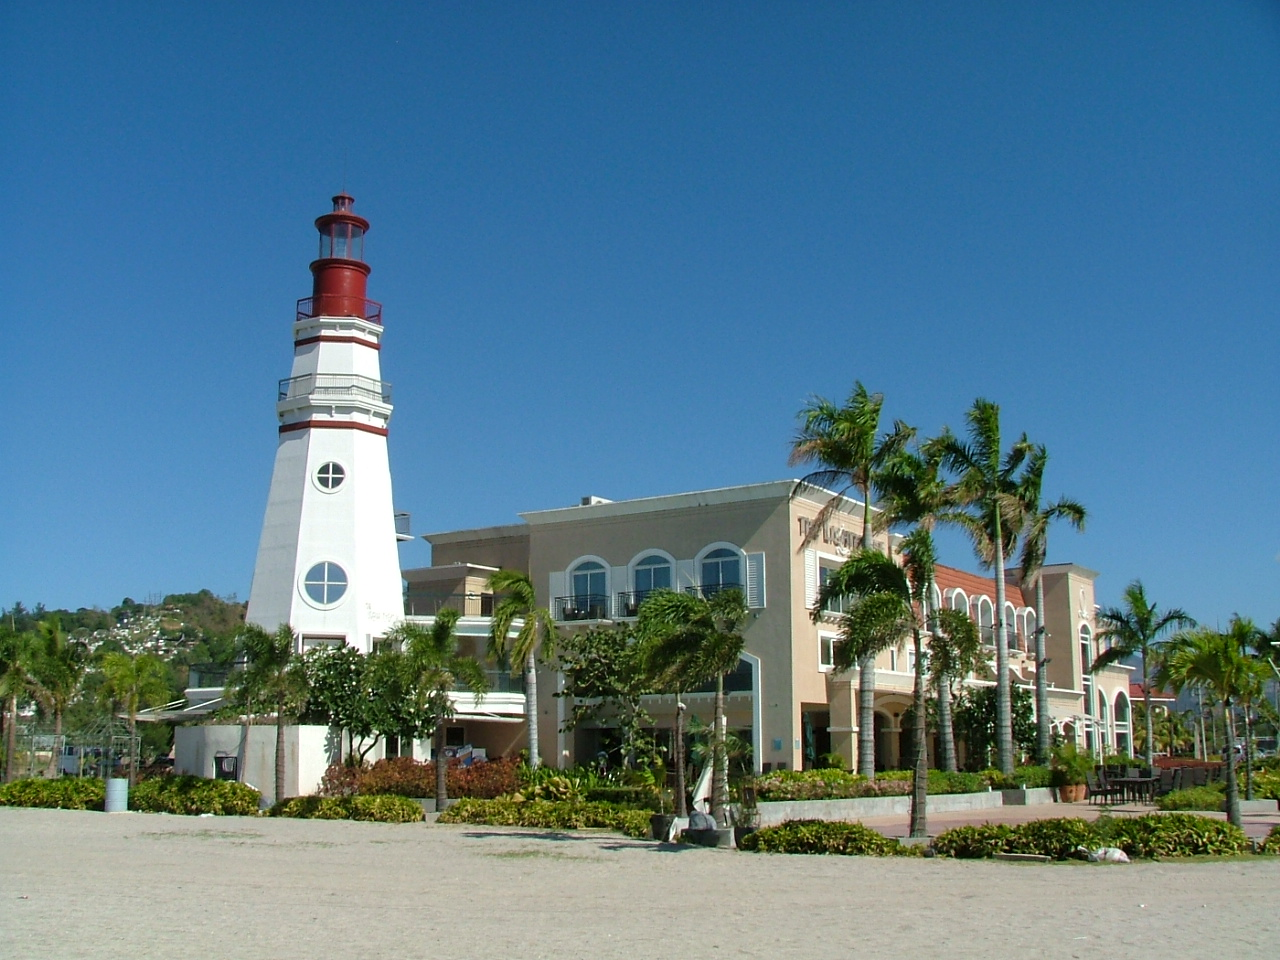 The Lighthouse Marina Resort